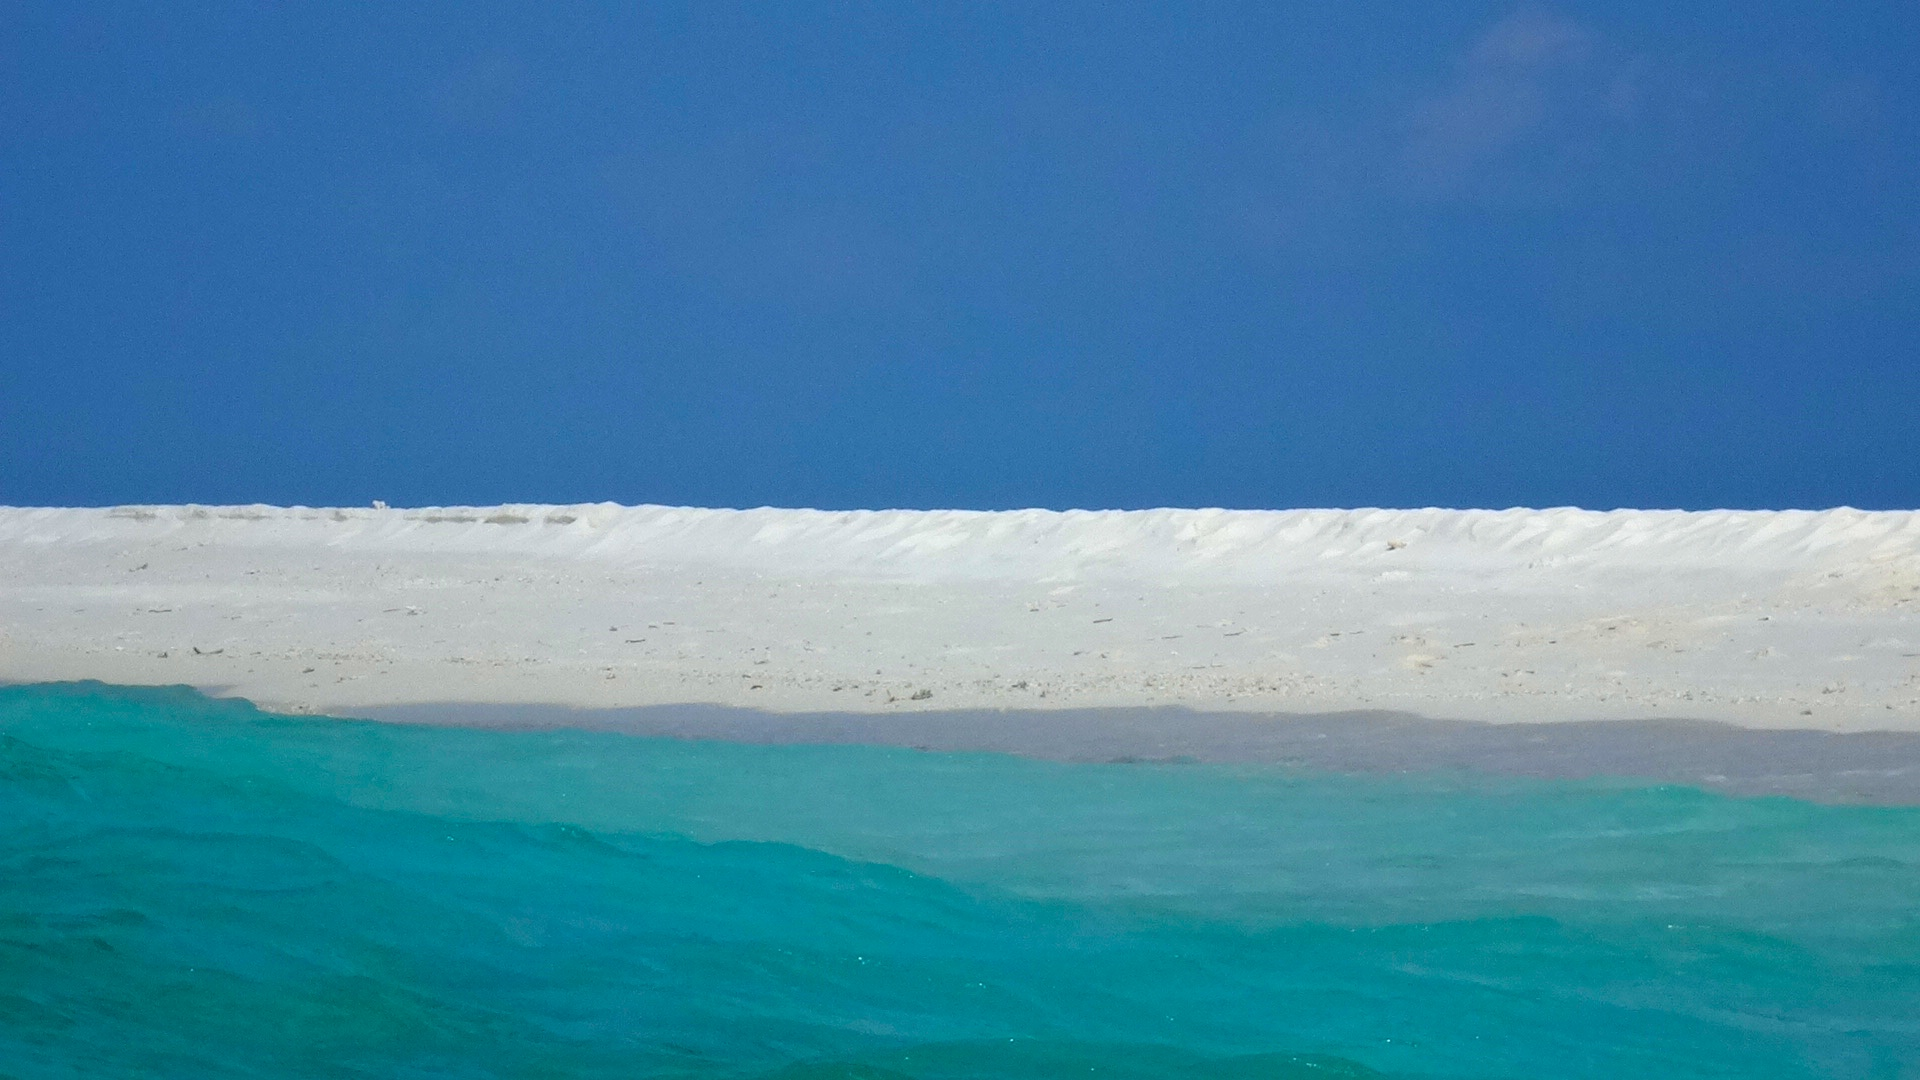 Sandbar in the Indian Ocean